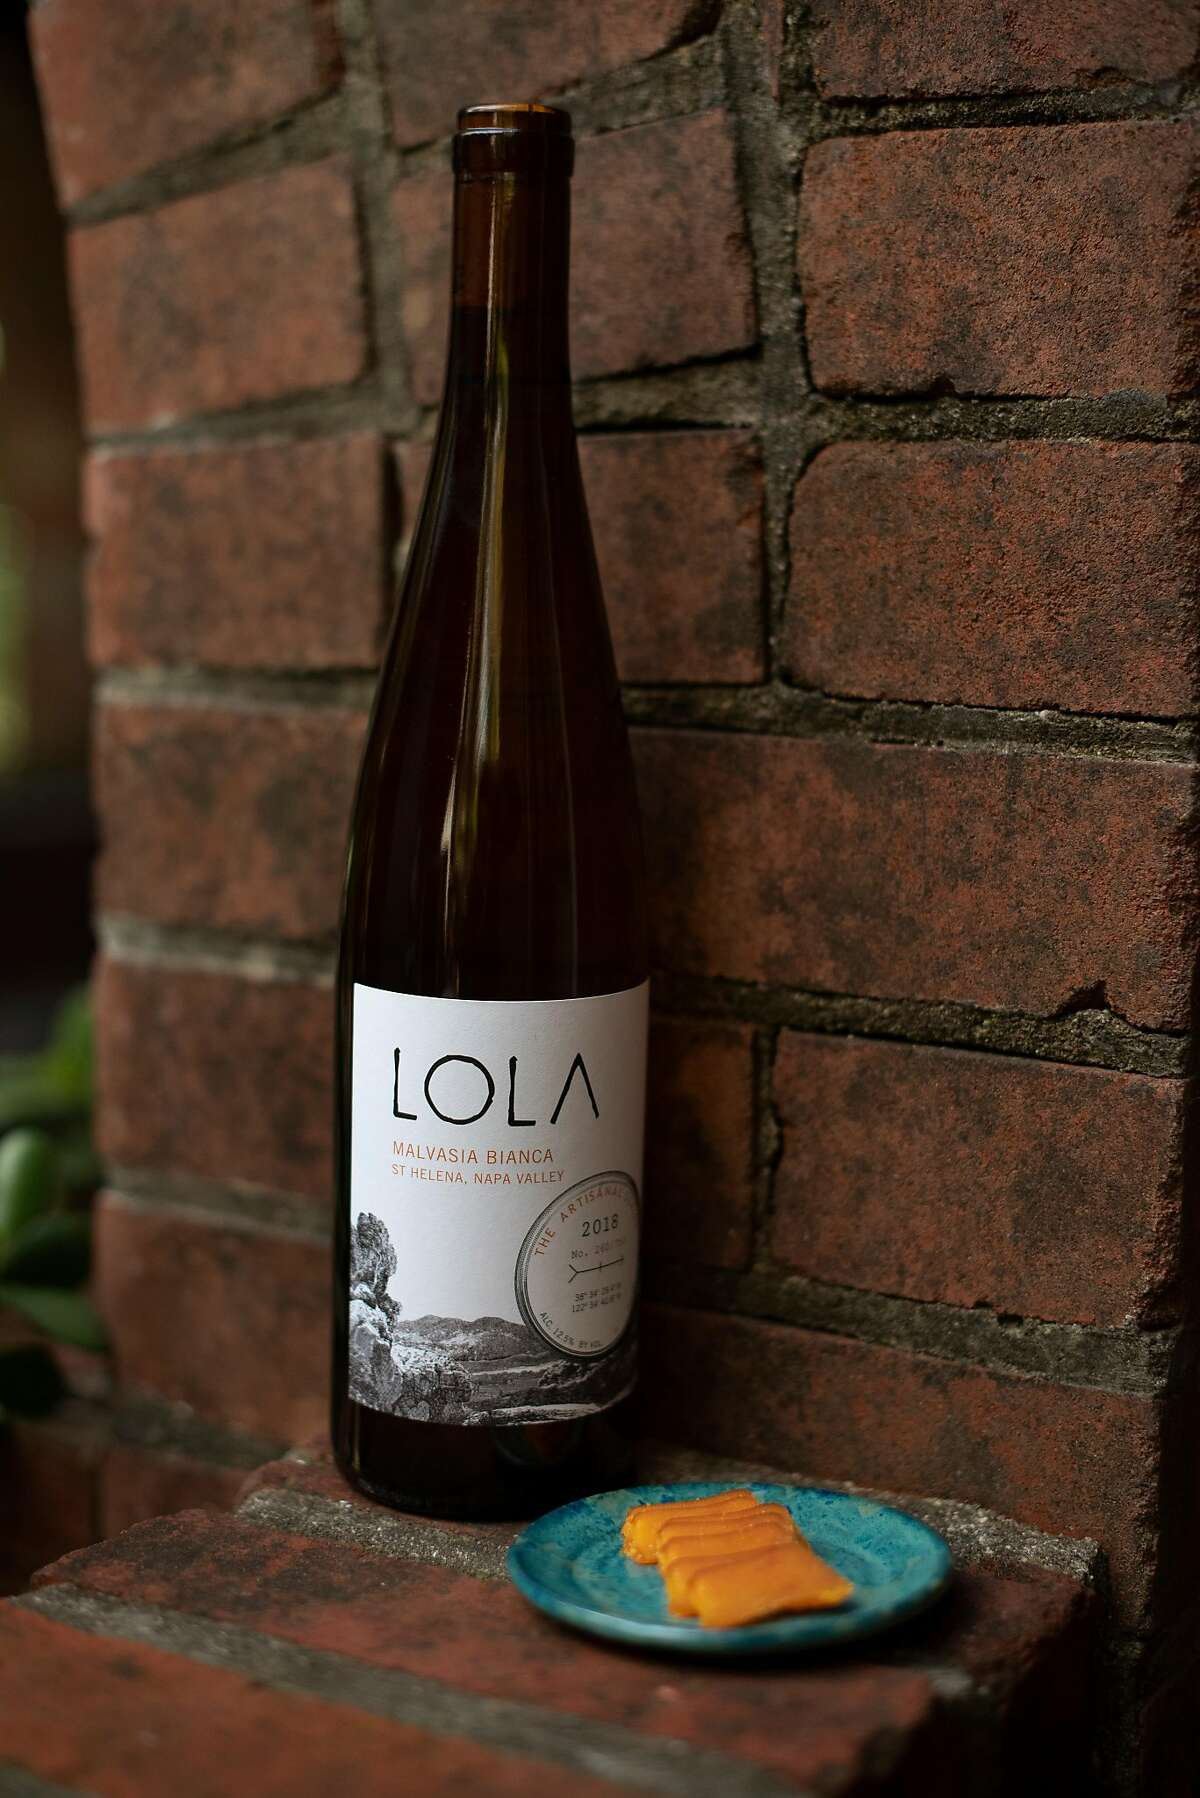 A bottle of Lola Malvasia Bianca from St. Helena with a plate of Cortez bottarga at Lola Wines tasting room located in an 1890s building in Calistoga, California, on Thursday, March 19, 2020.